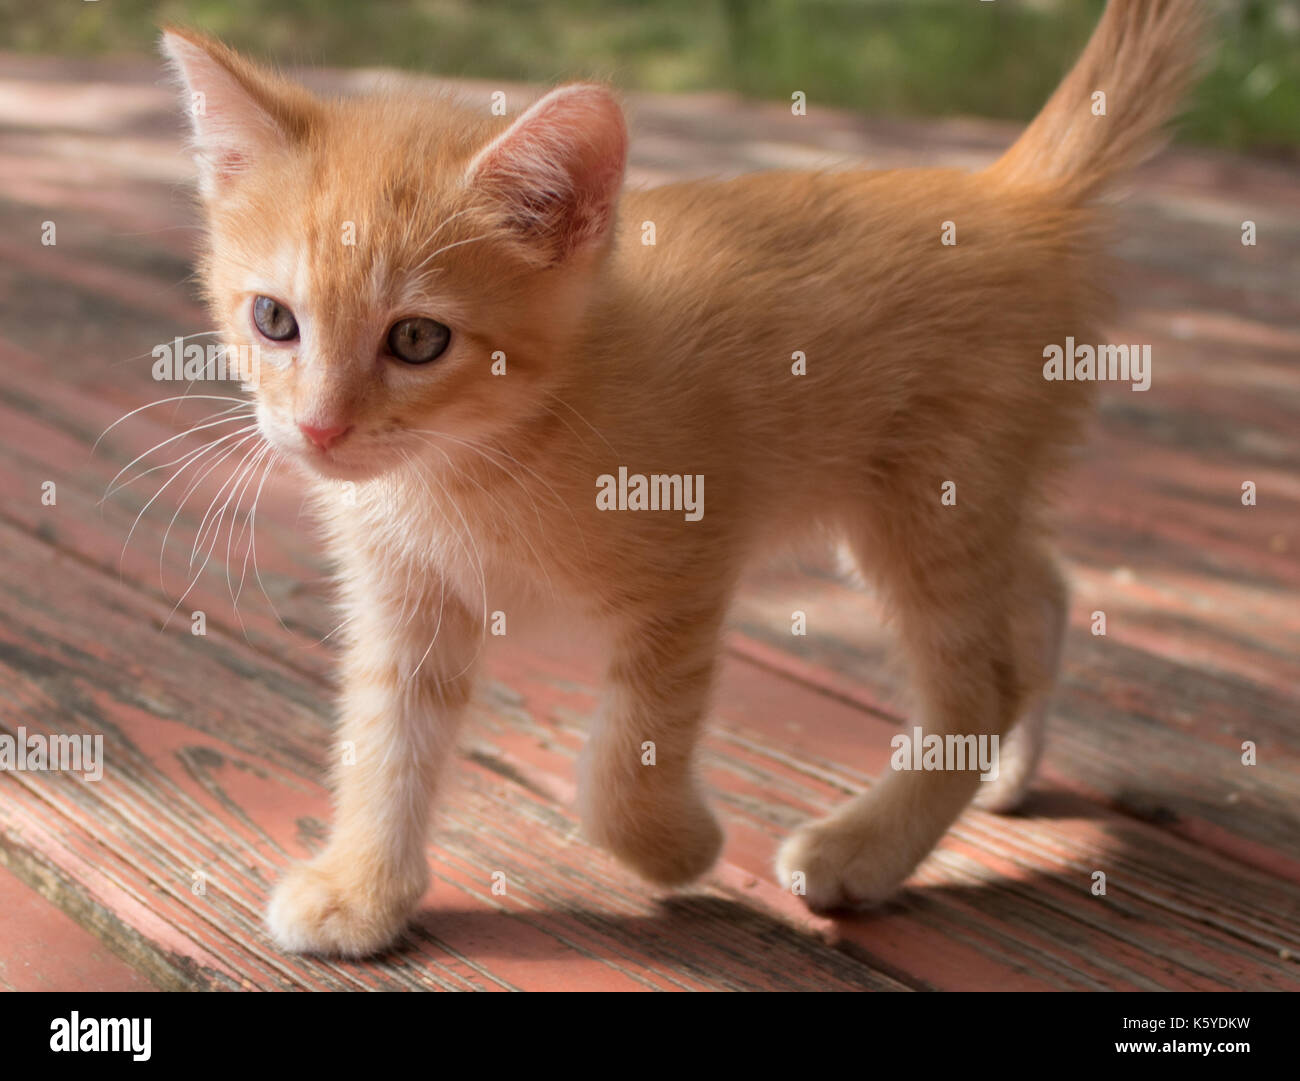 Orange Kitten With Stripes And Blue Eyes Exploring